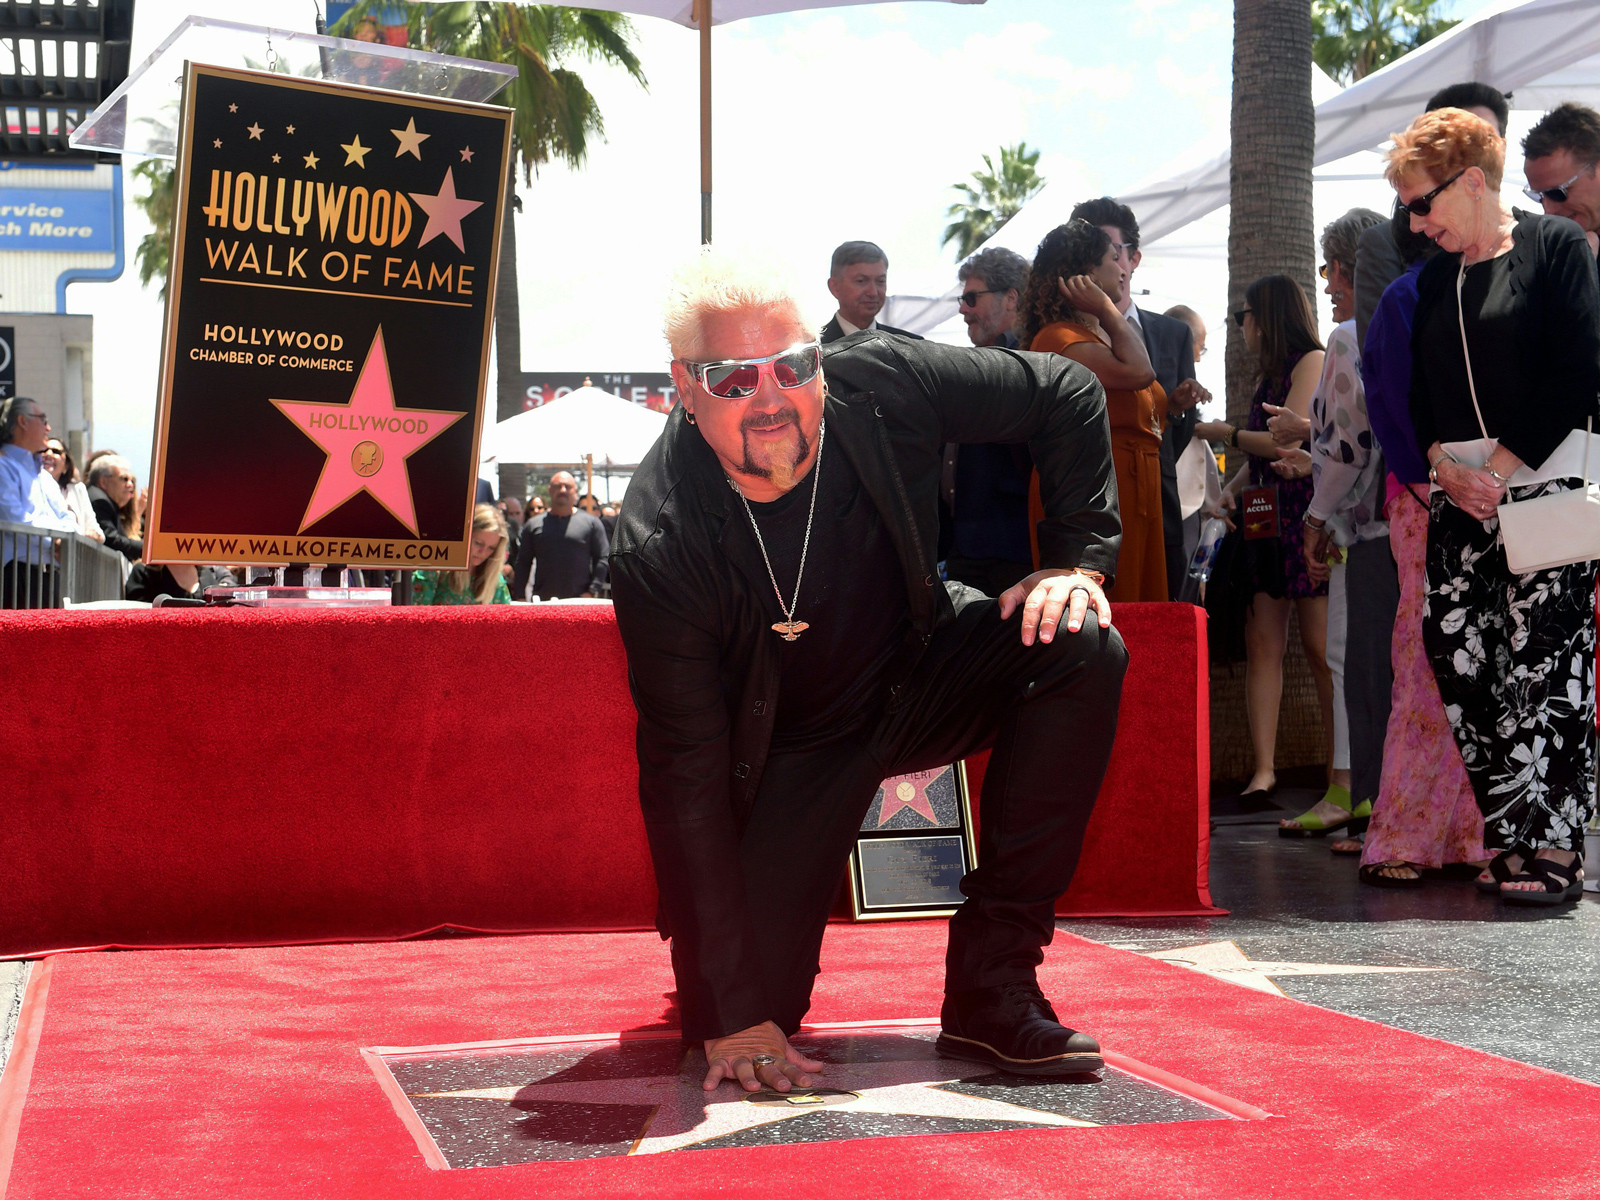 Guy Fieri Accepts Walk of Fame Star: 'Thank You to the Residents of Flavortown'